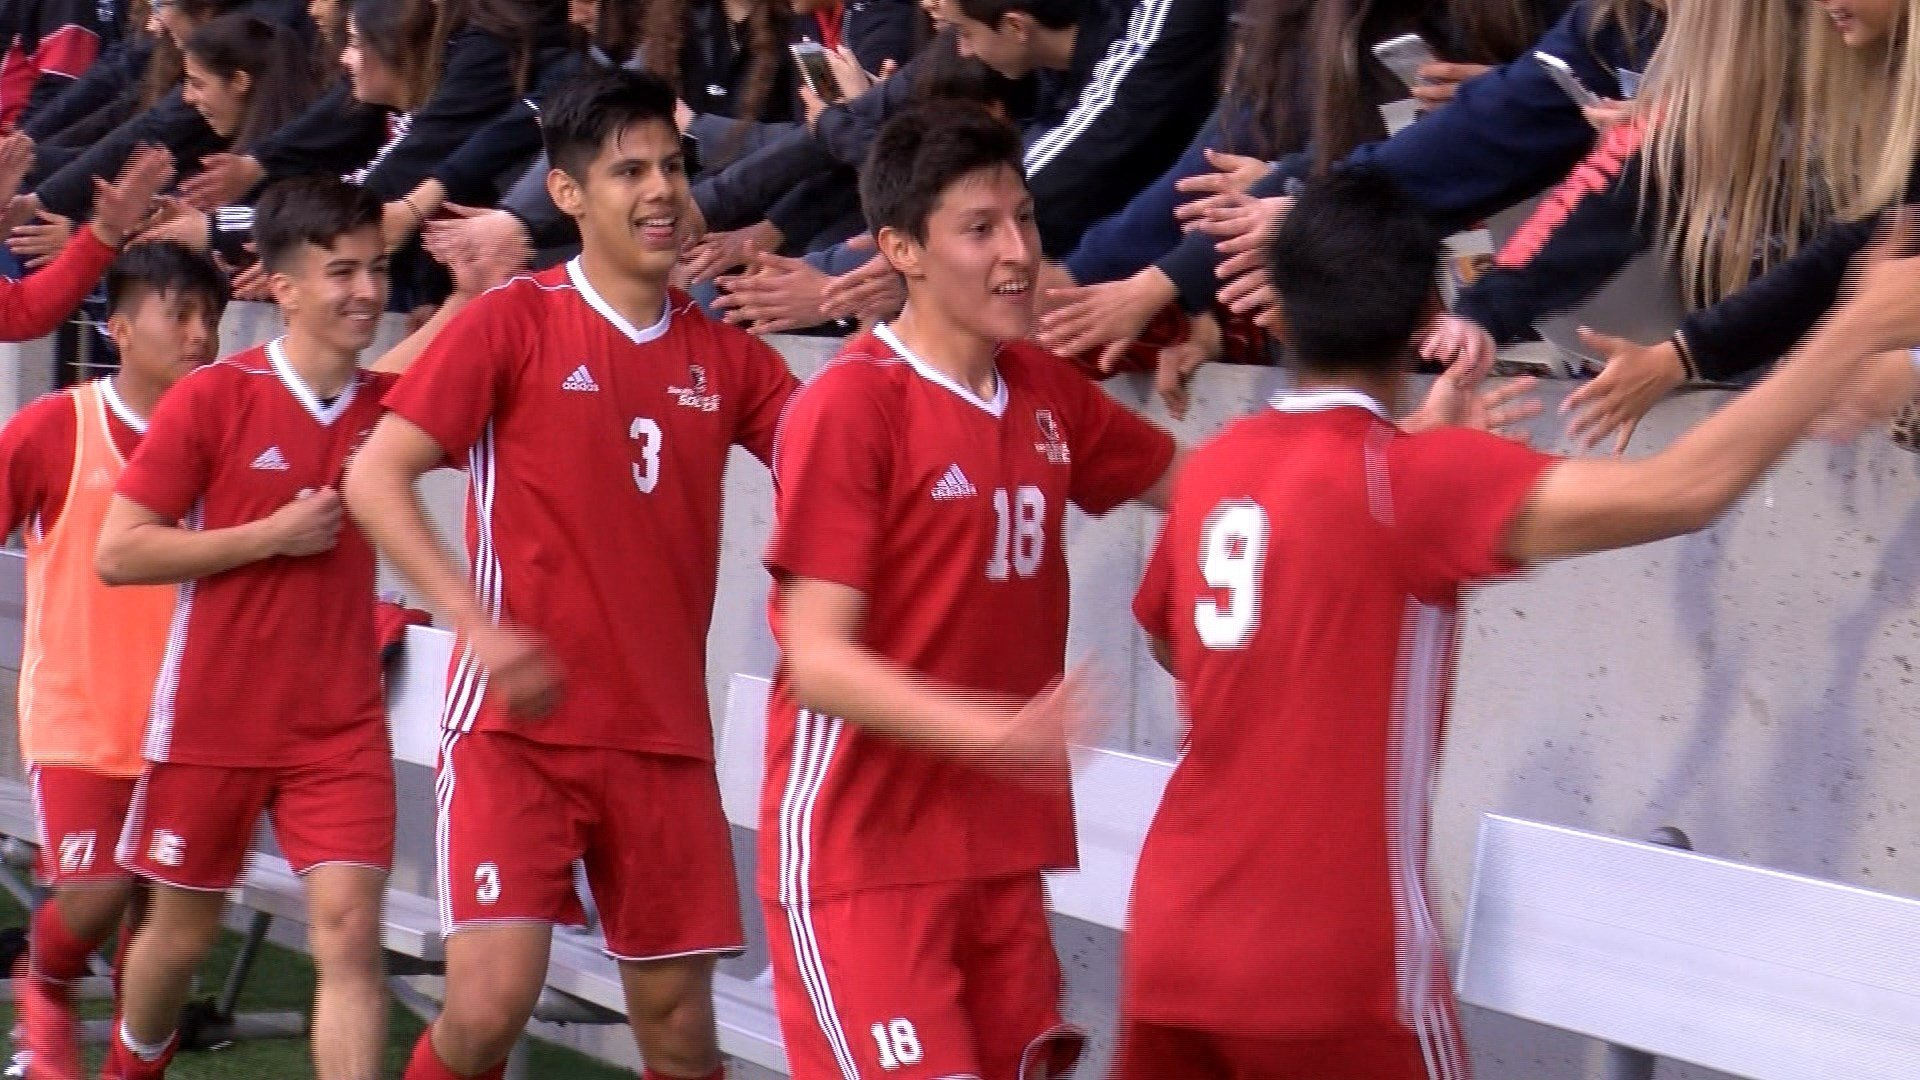 South Sioux City beat Gretna on Saturday, 1-0, to return to the Class B state title game.